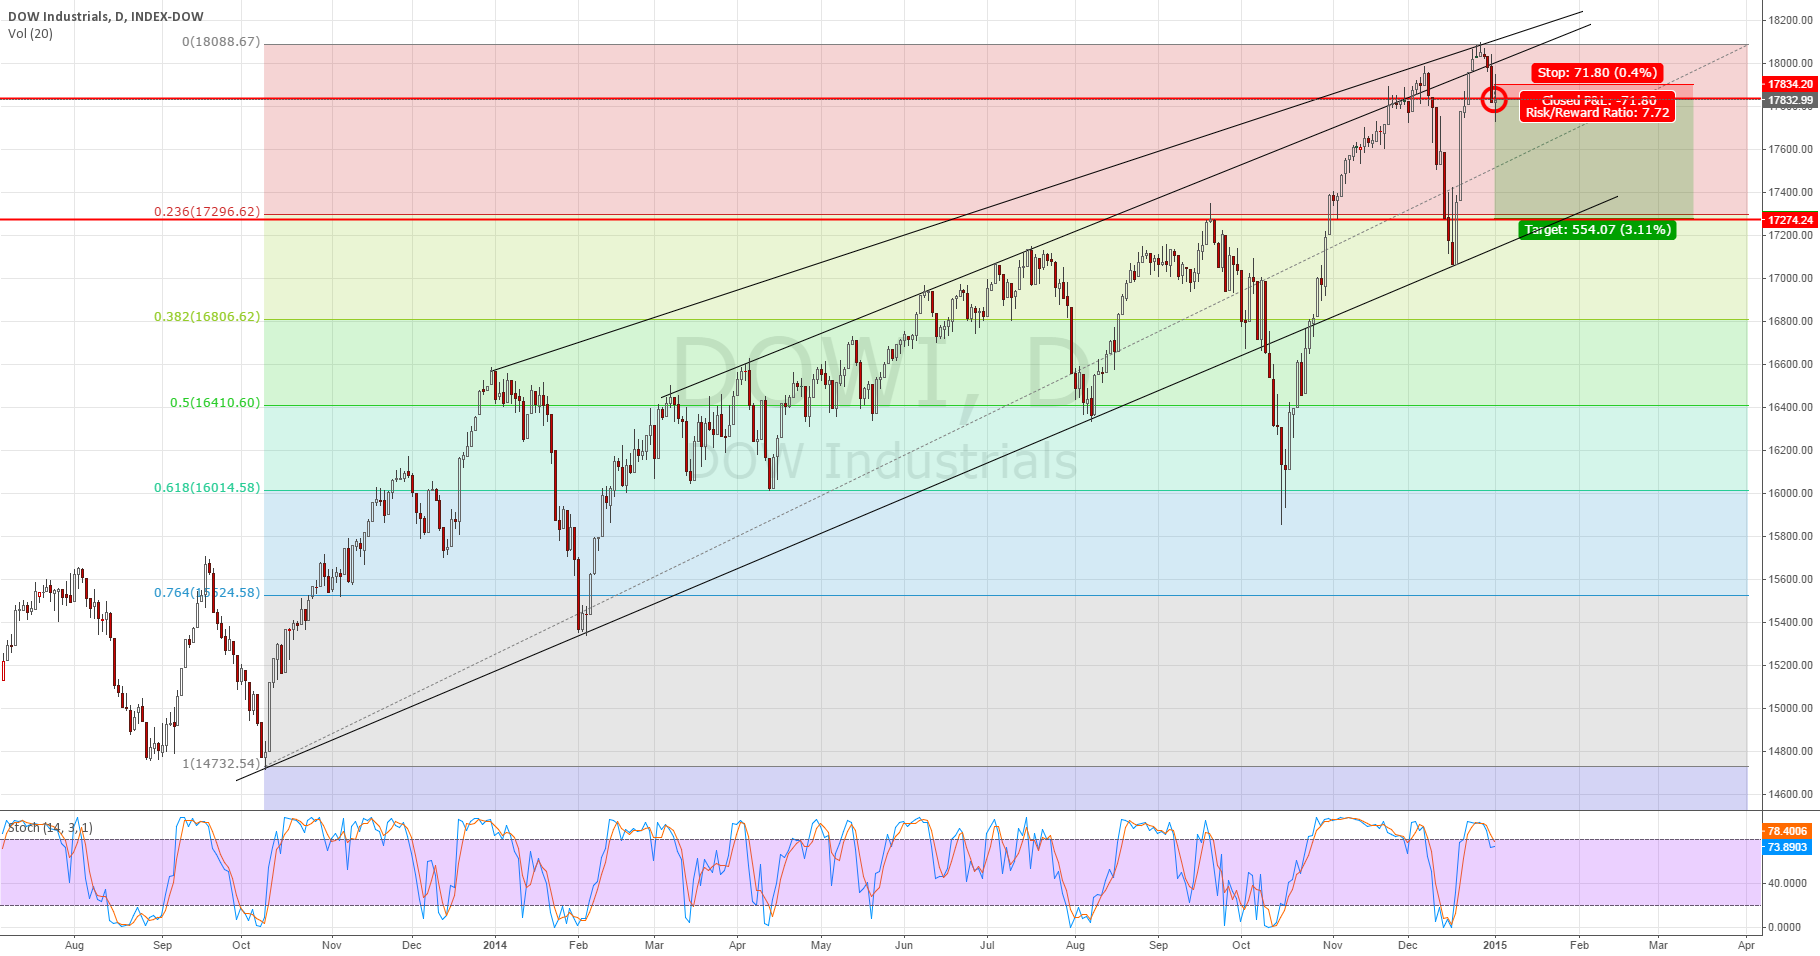 DOW Closing the first week of 2015 below Support!